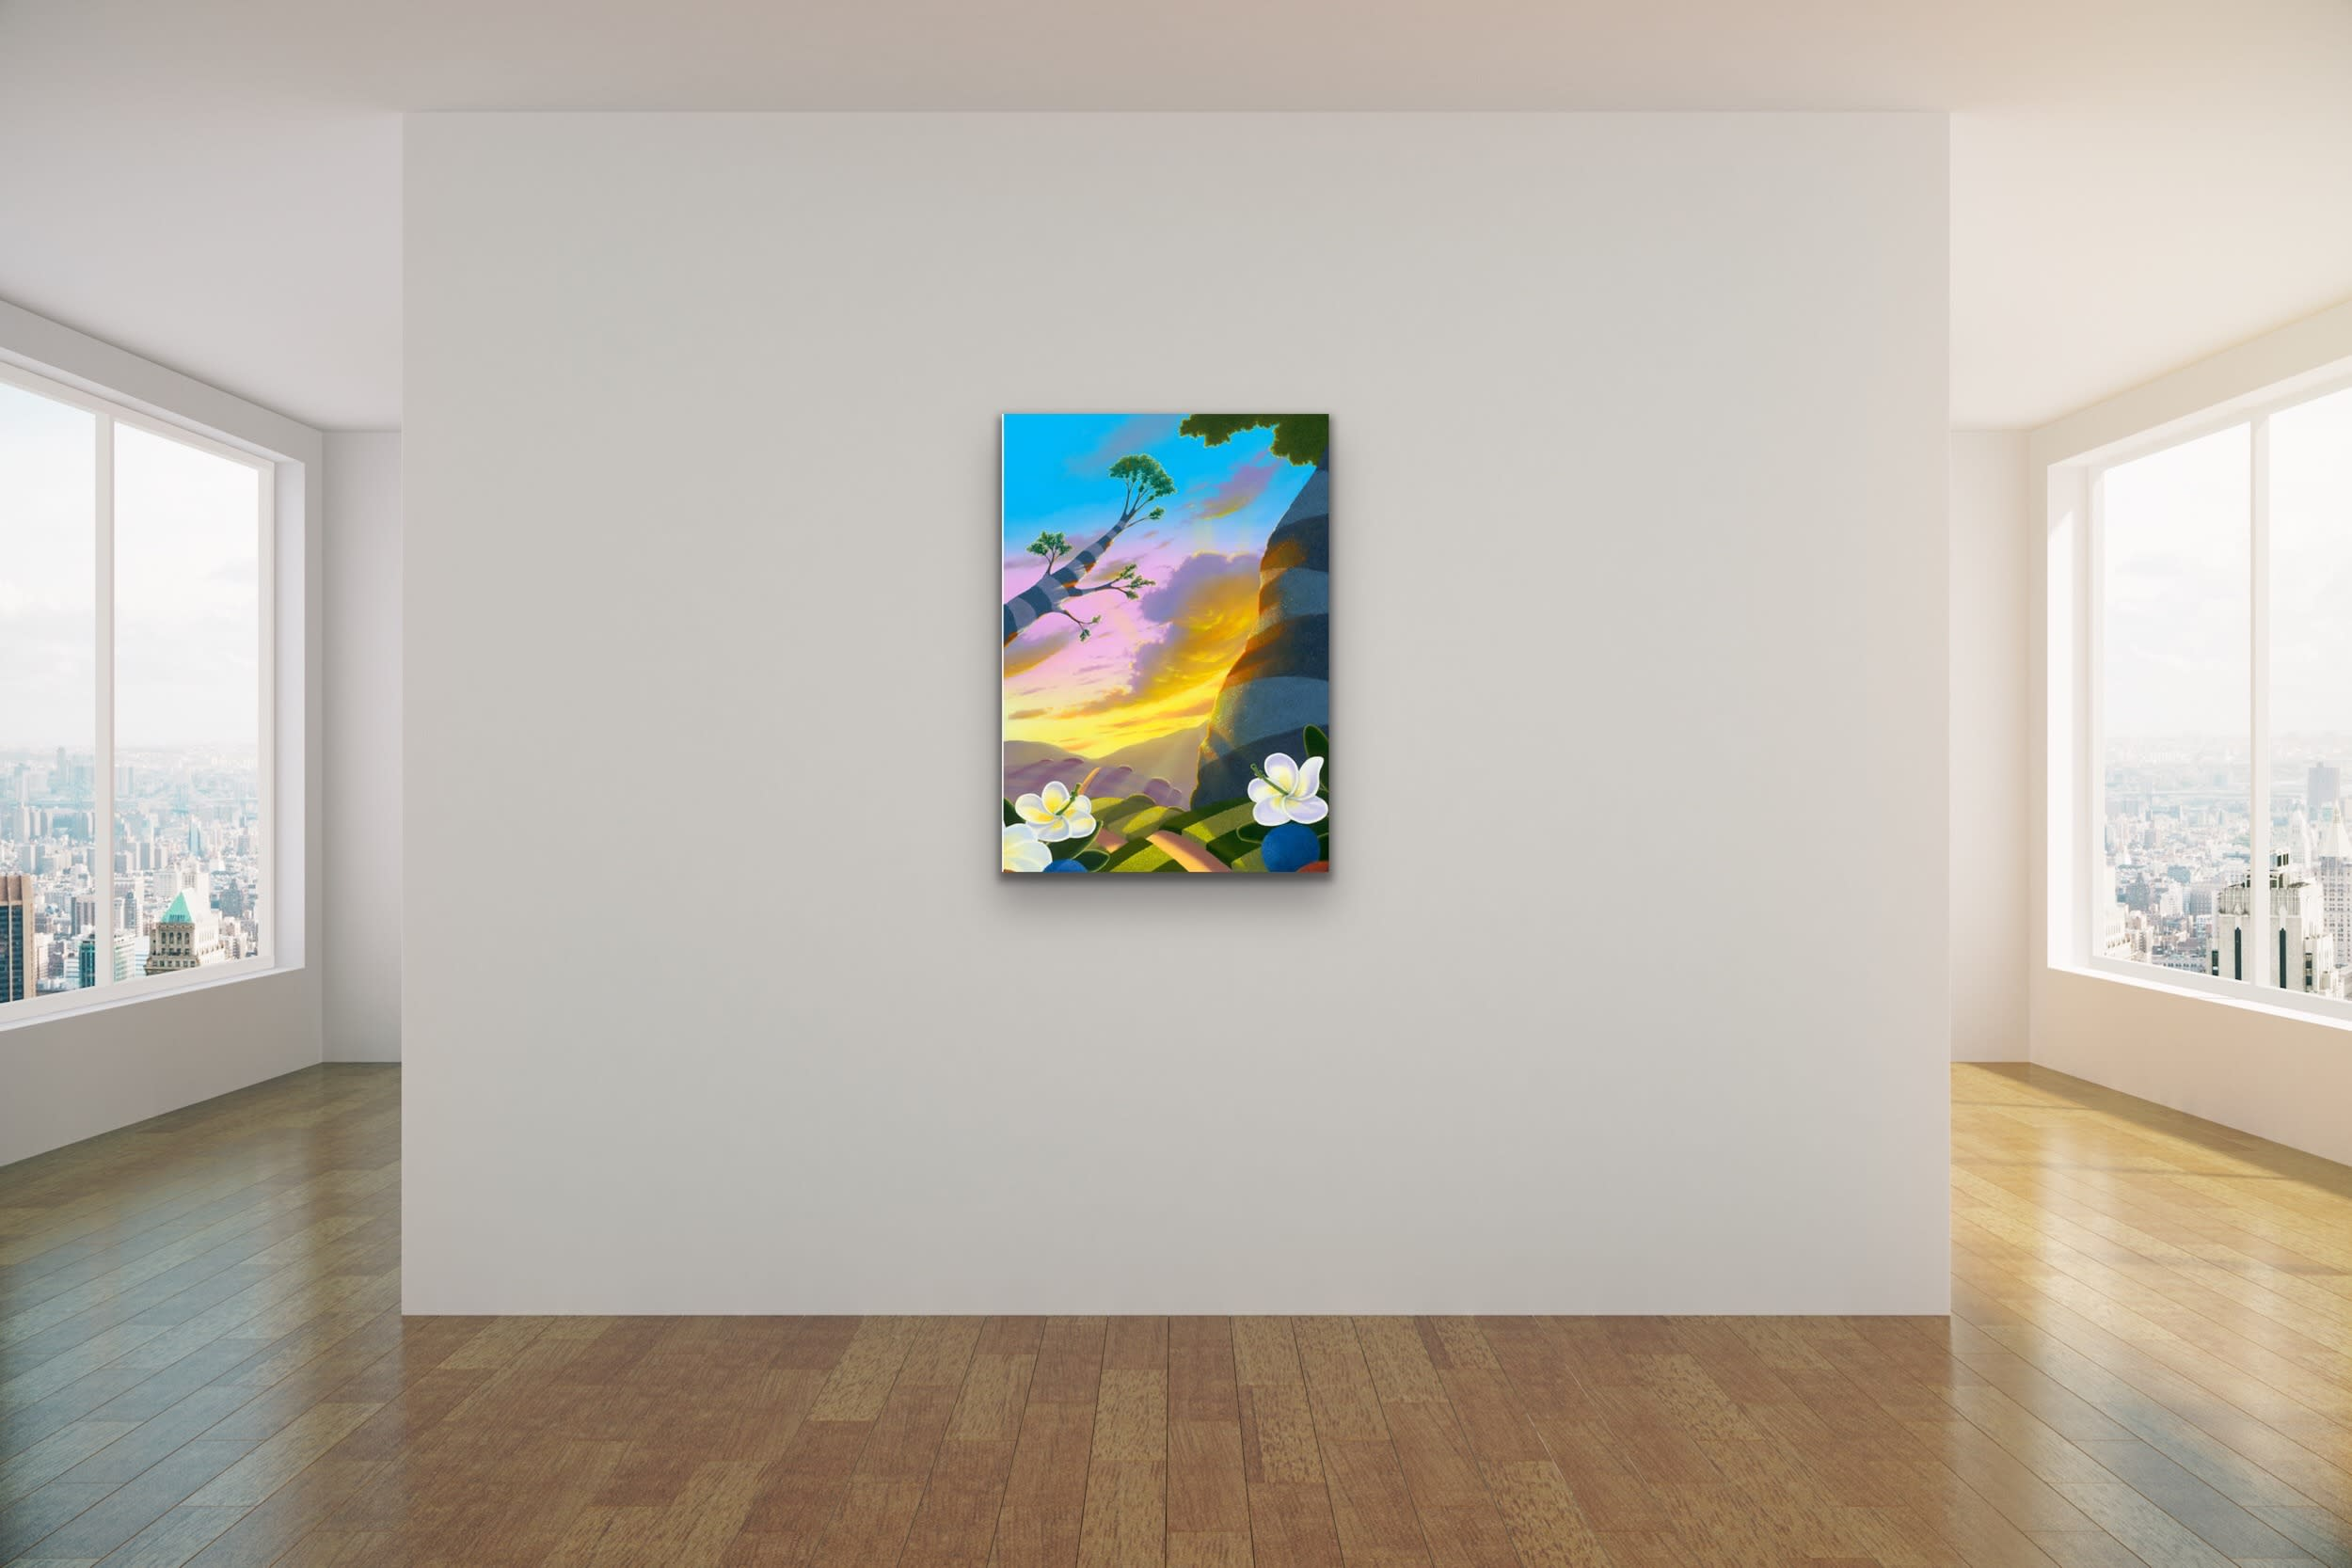 <div class='title'>           Michael Provenza Mock Ups Evo Art Maui Lahaina Gallery Pointilism Disney Artist Dreamscape Surreal Colorful Dots 3         </div>